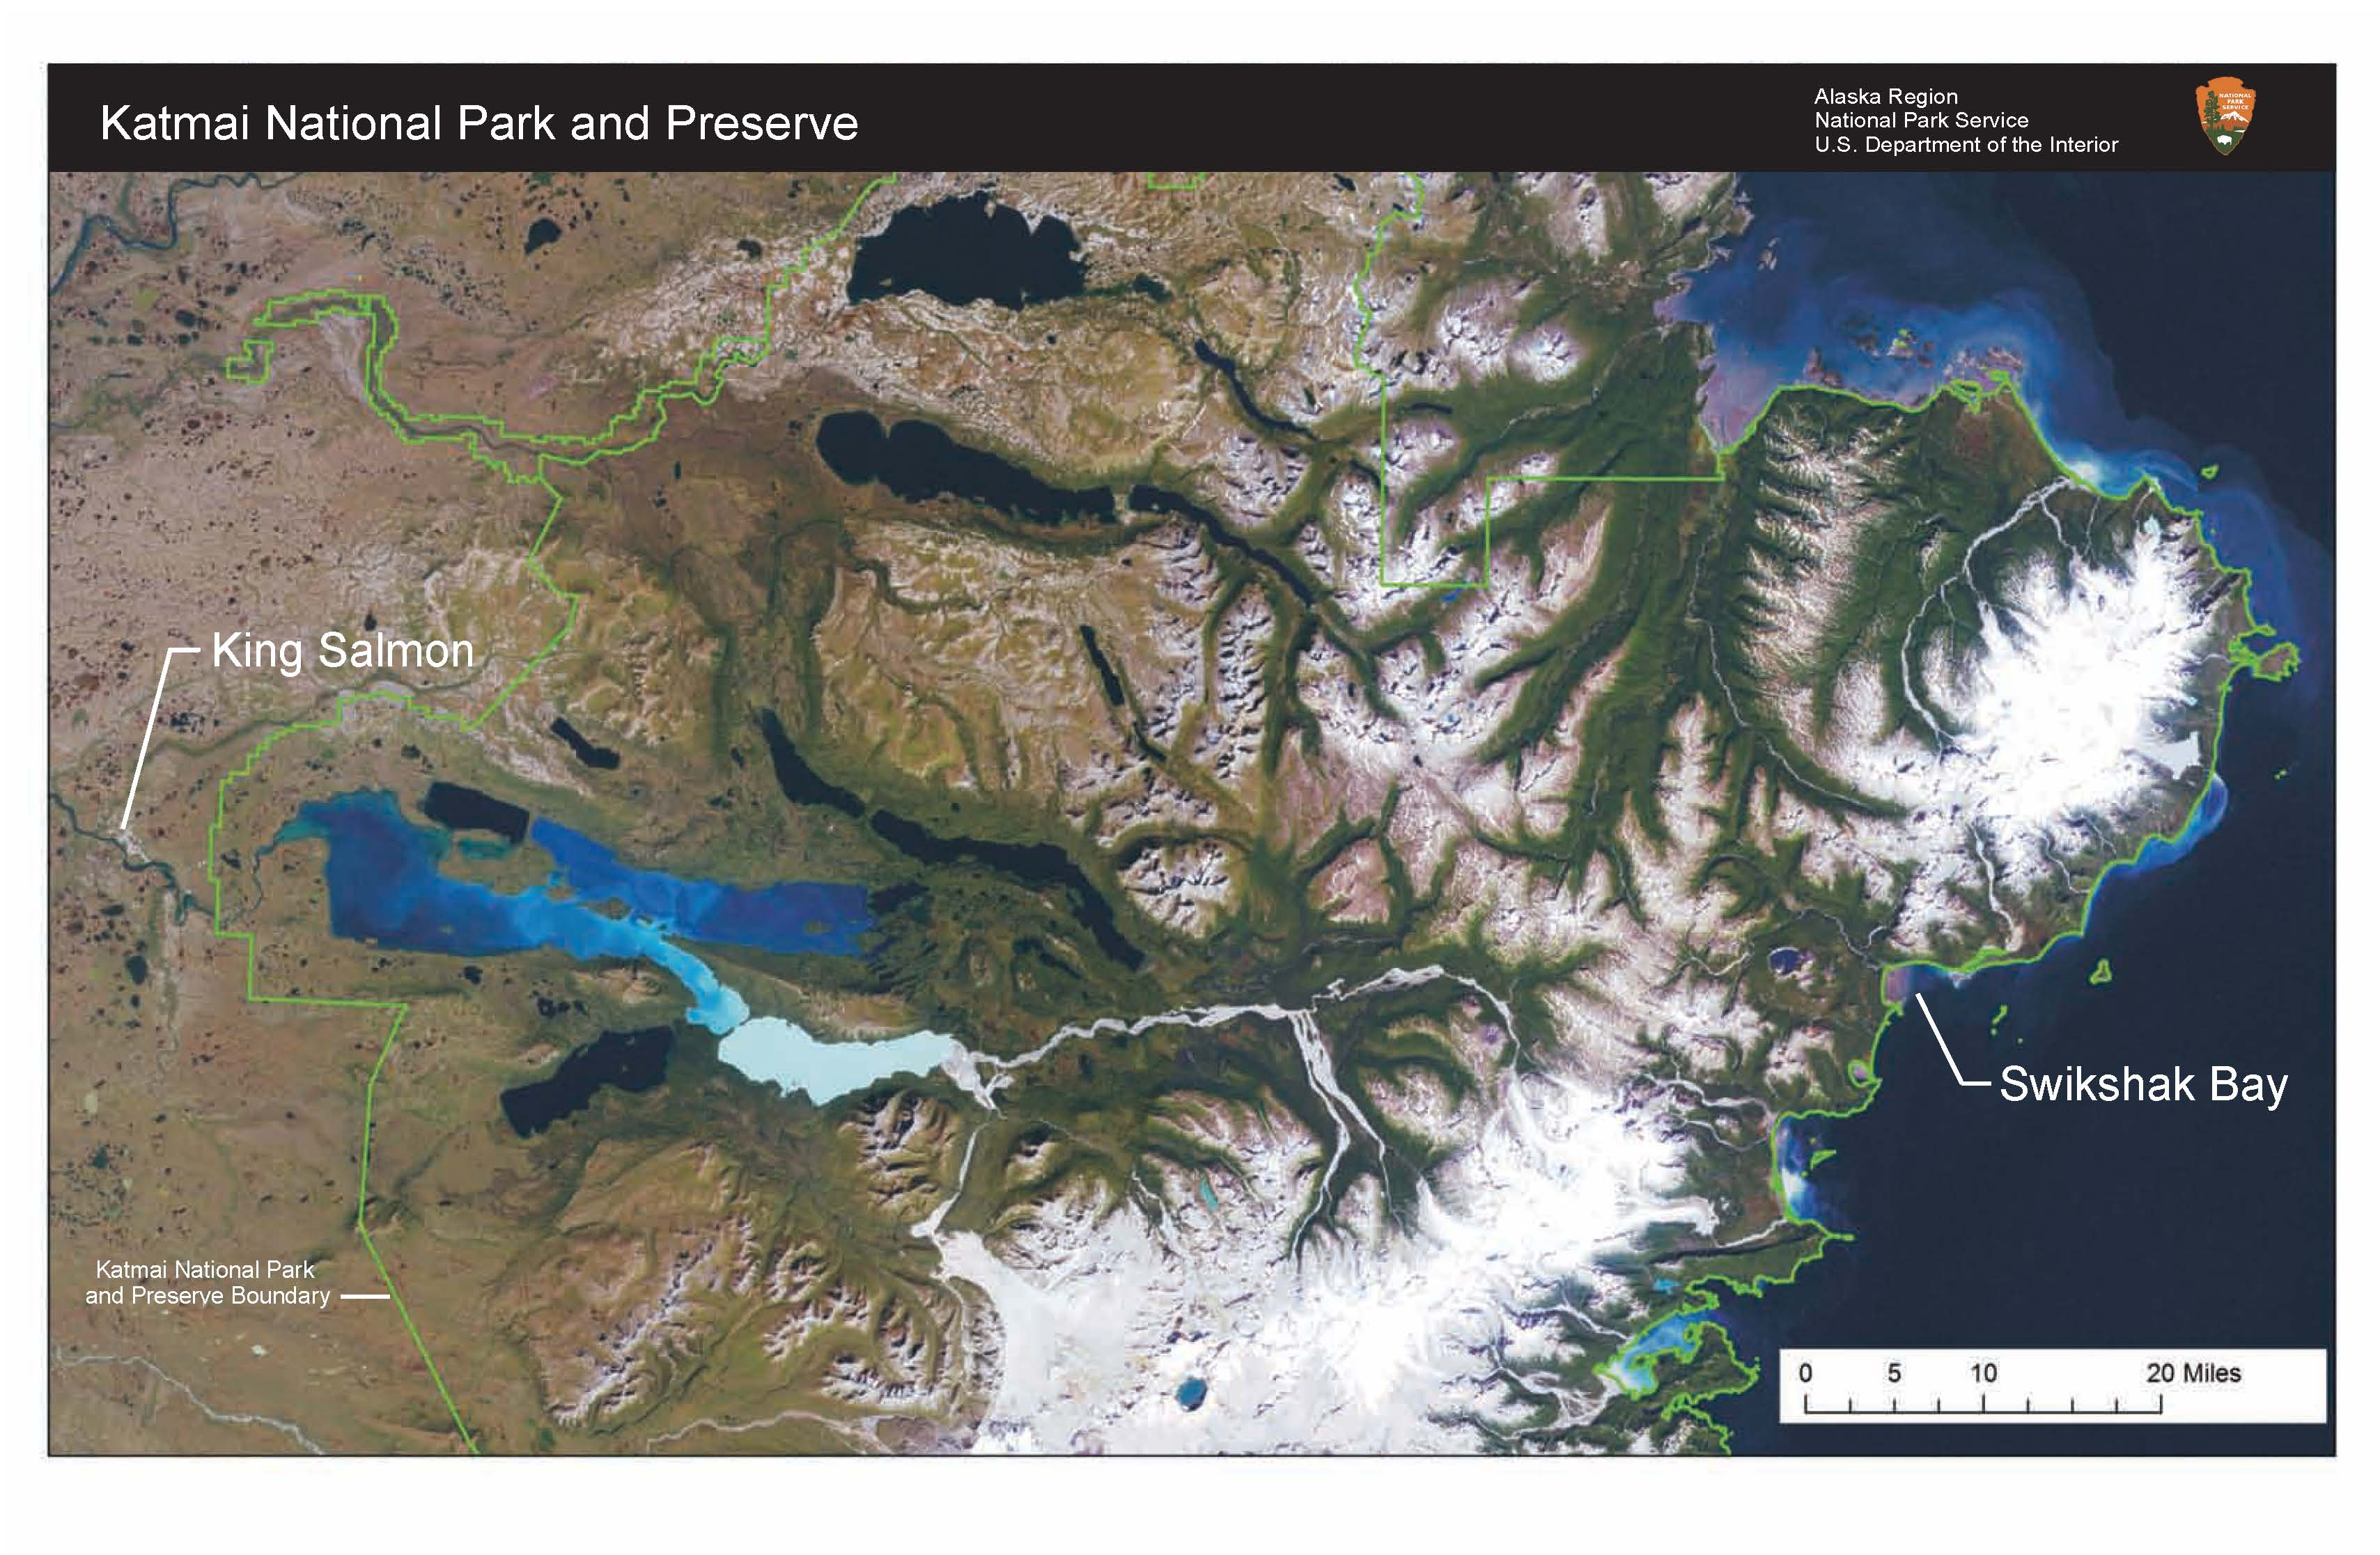 A map of Katmai National Park and Preserve